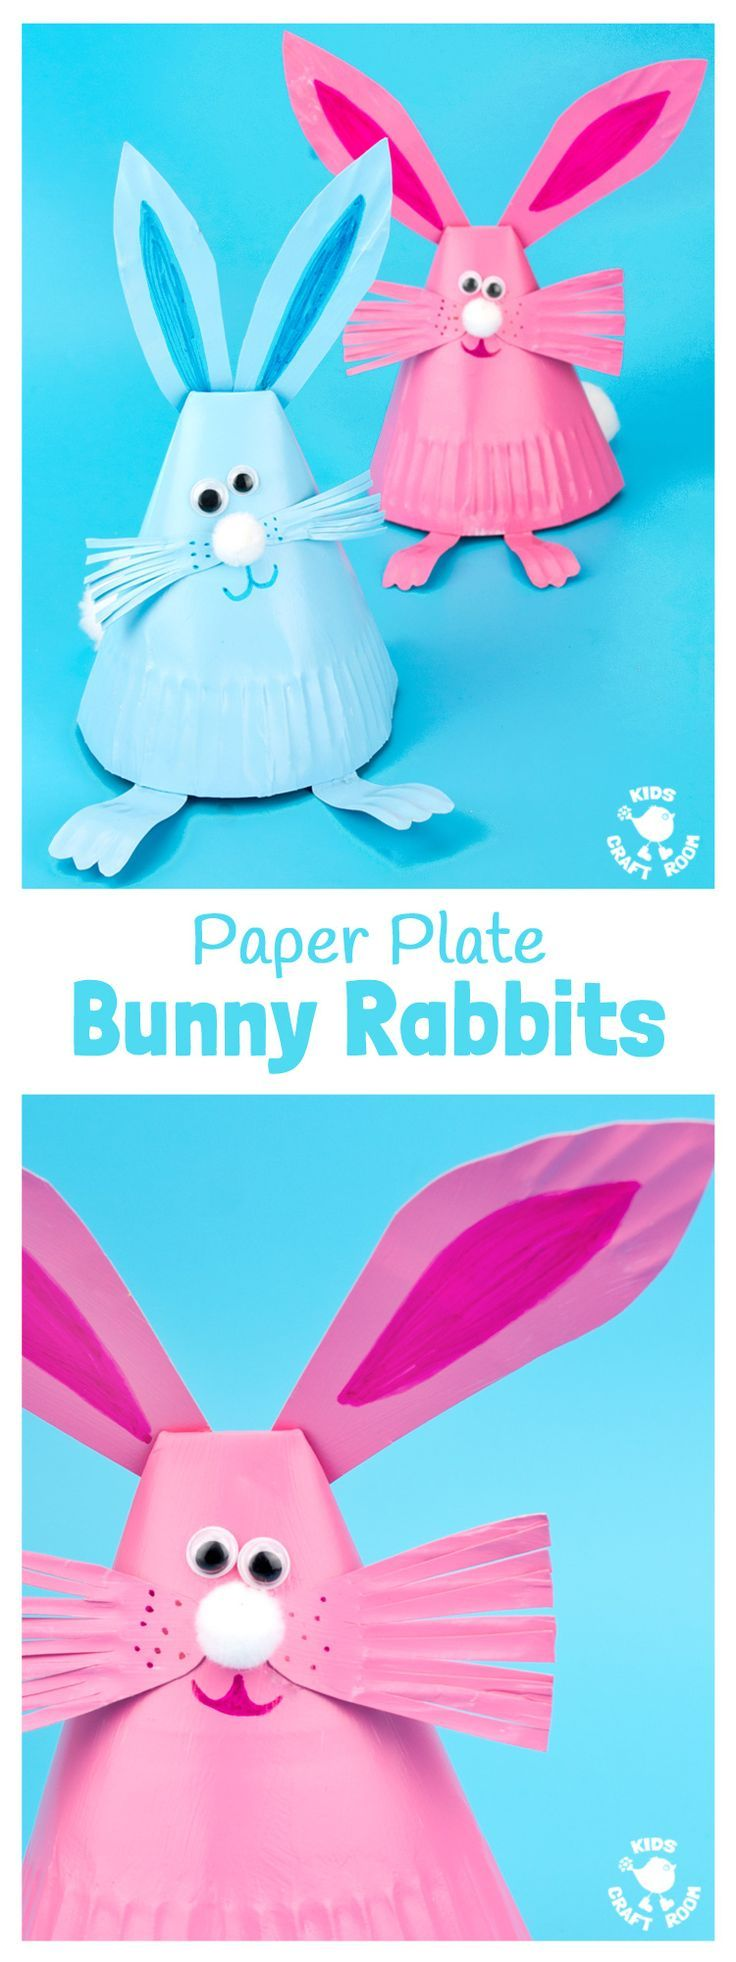 This Paper Plate Rabbit Craft is a super Easter craft or Spring craft for kids. Whether you make them as an Easter bunny craft or for everyday, these cute bouncing bunnies are so much fun!